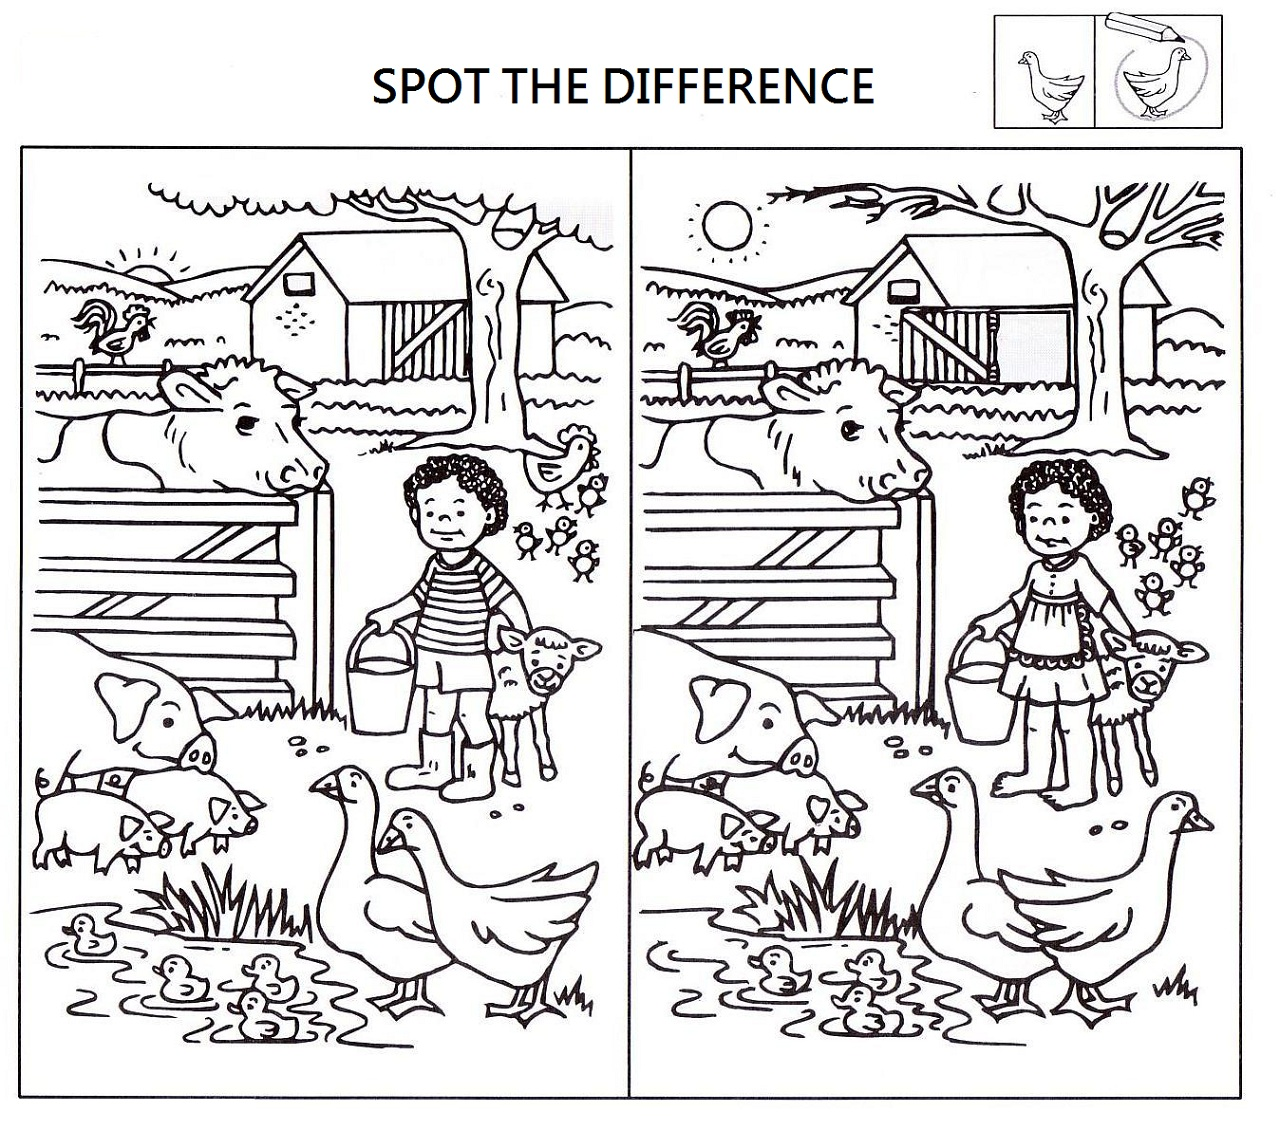 Spot The Difference Worksheets For Kids Activity Shelter, Kids